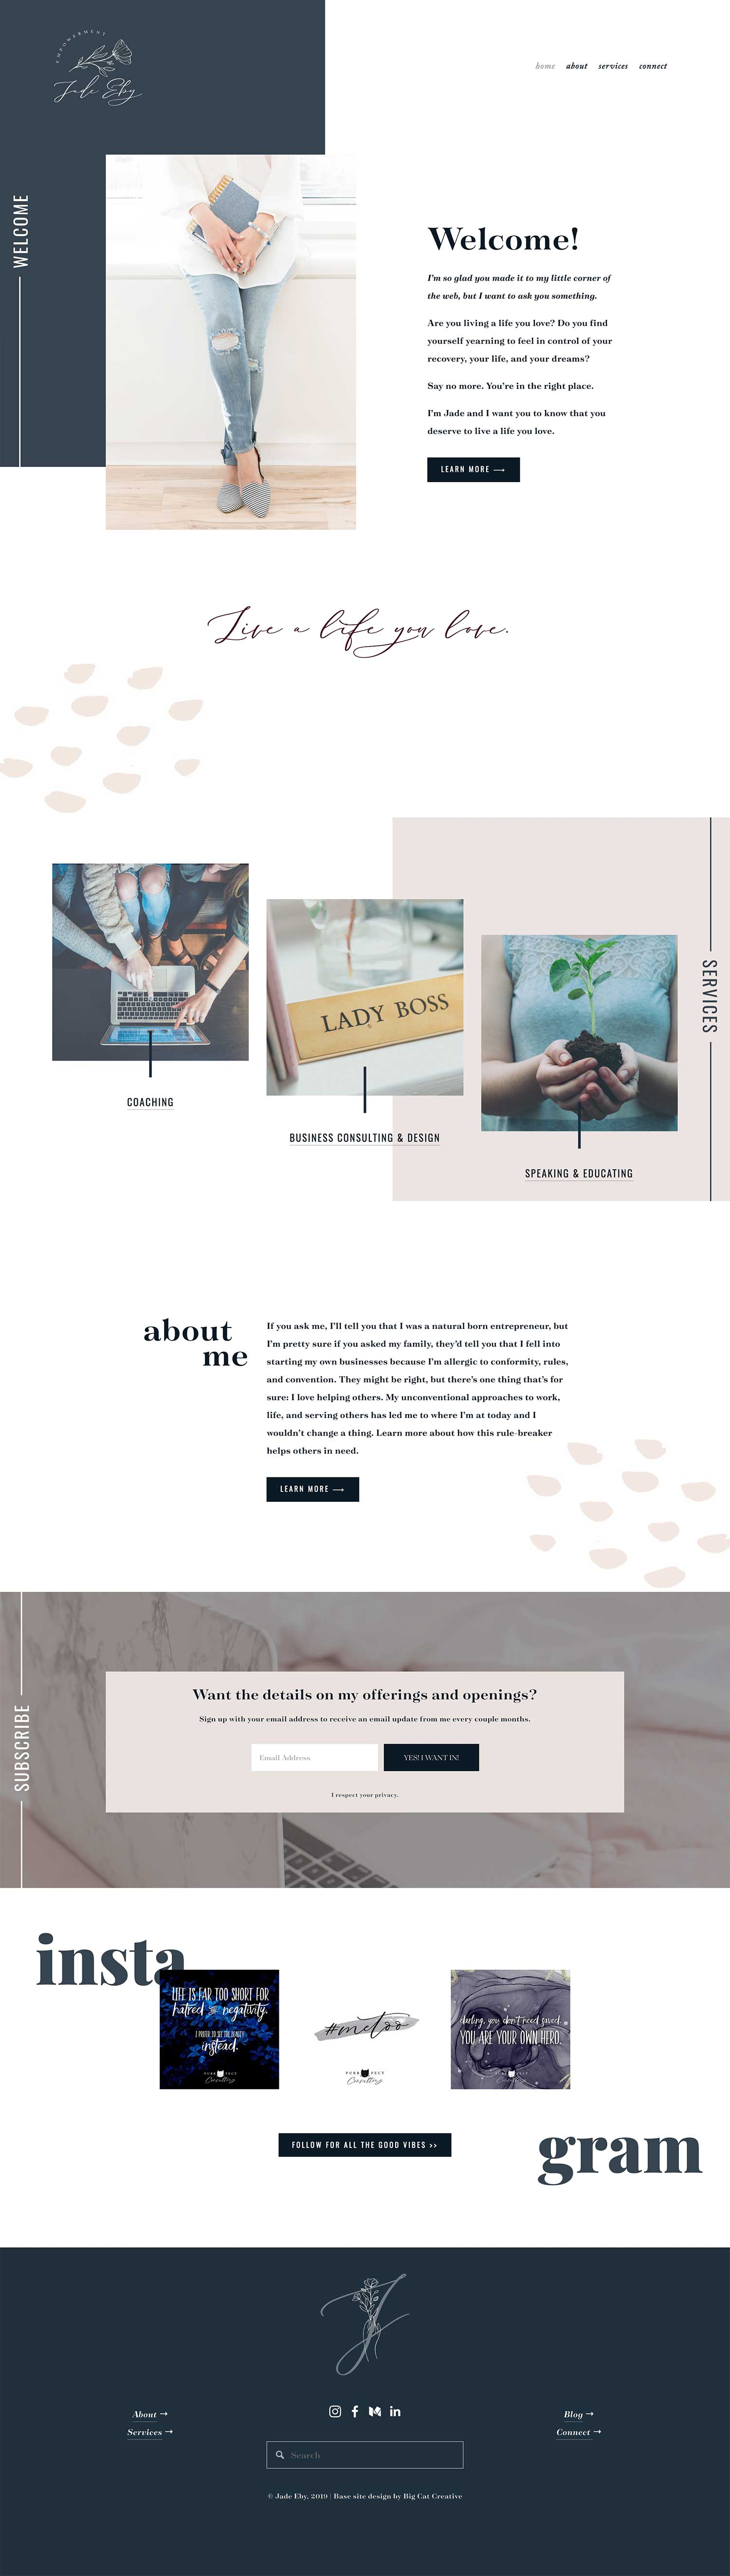 Squarespace Template Design by Big Cat Creative - Unearth Template Showcase - Jade Eby